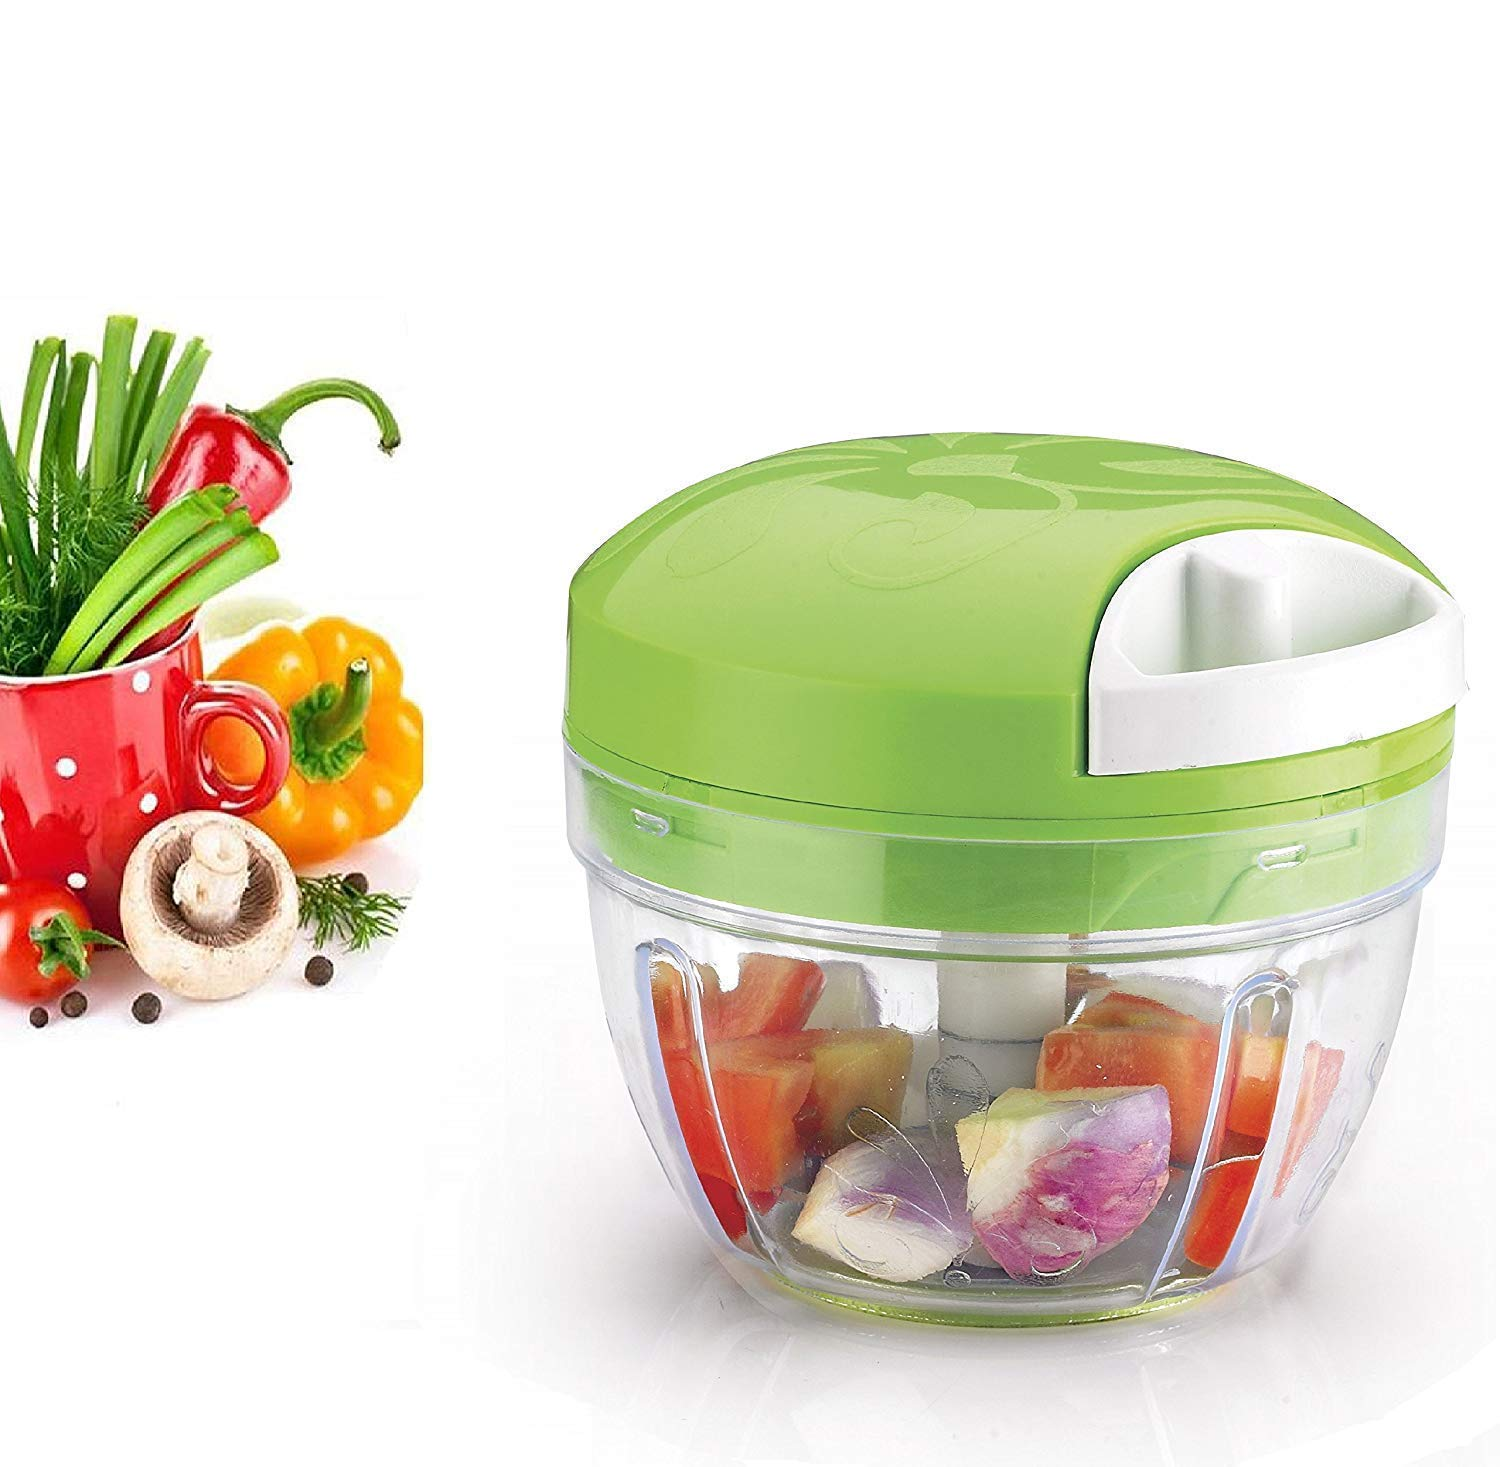 Vegetable Spin Cutter Fast and Efficient All in 1